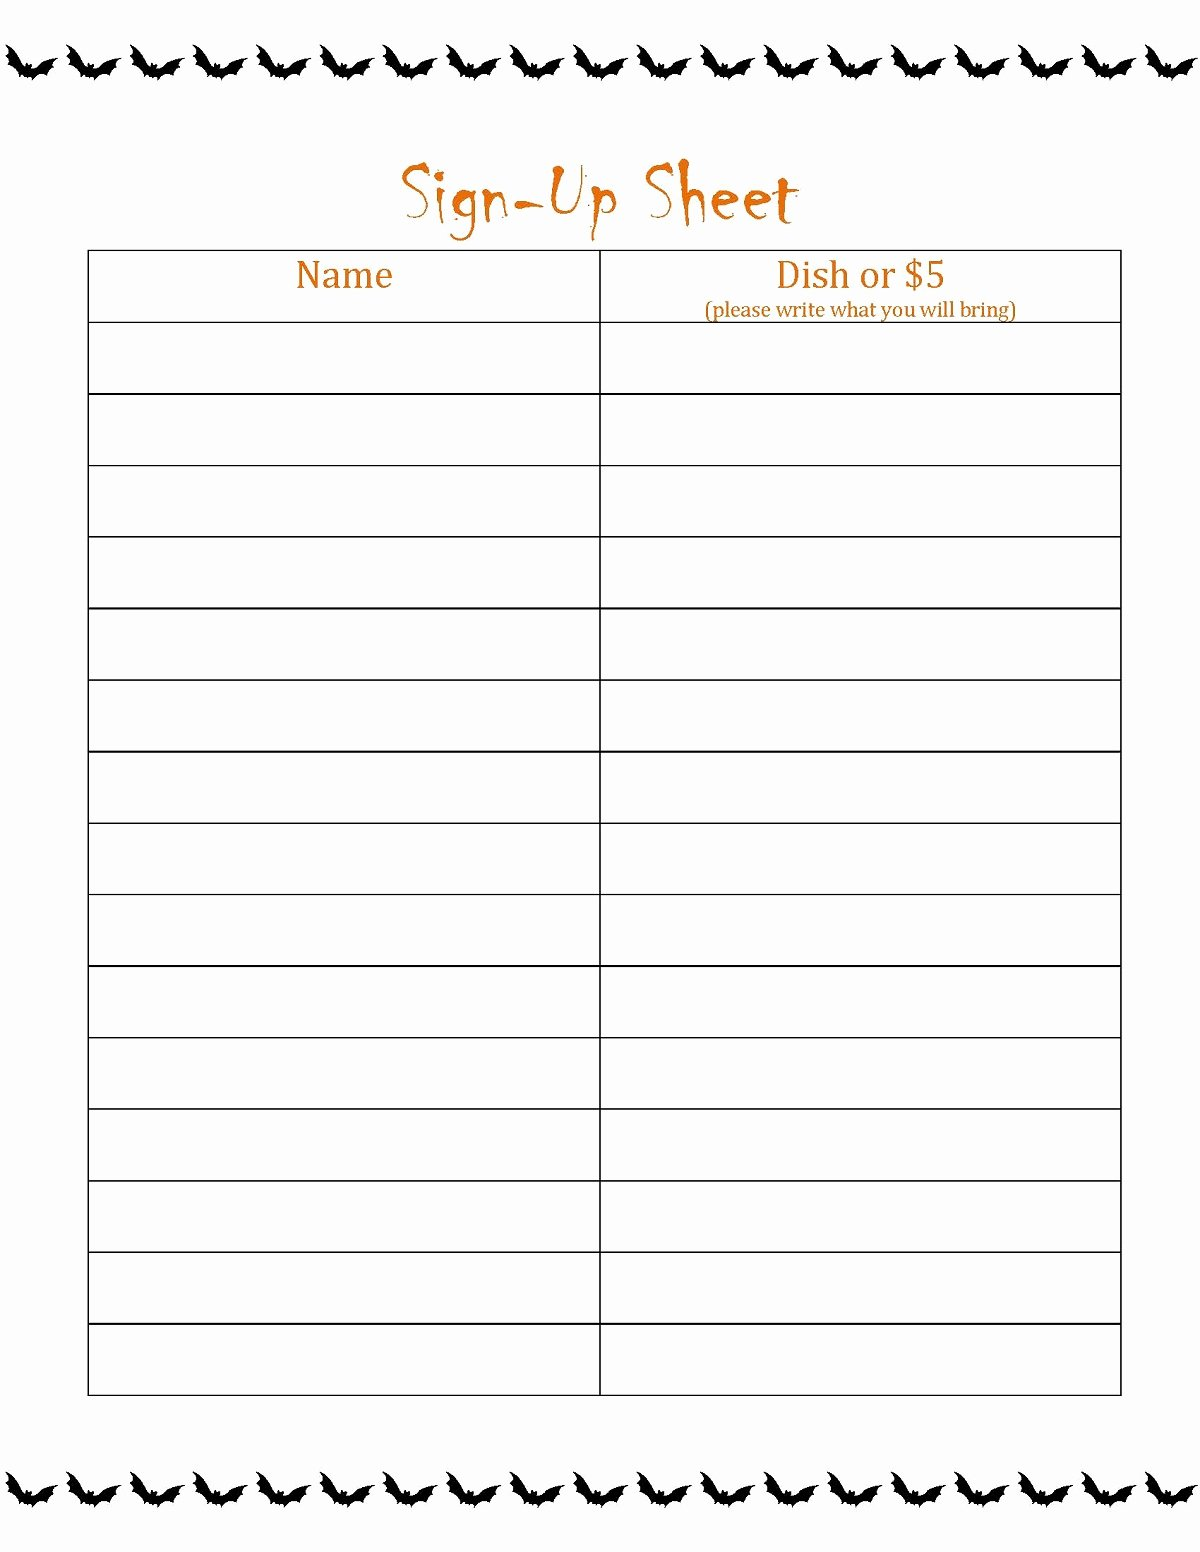 Food Sign Up Sheet Template Best Of Free Printable Sign Up Sheet Printable